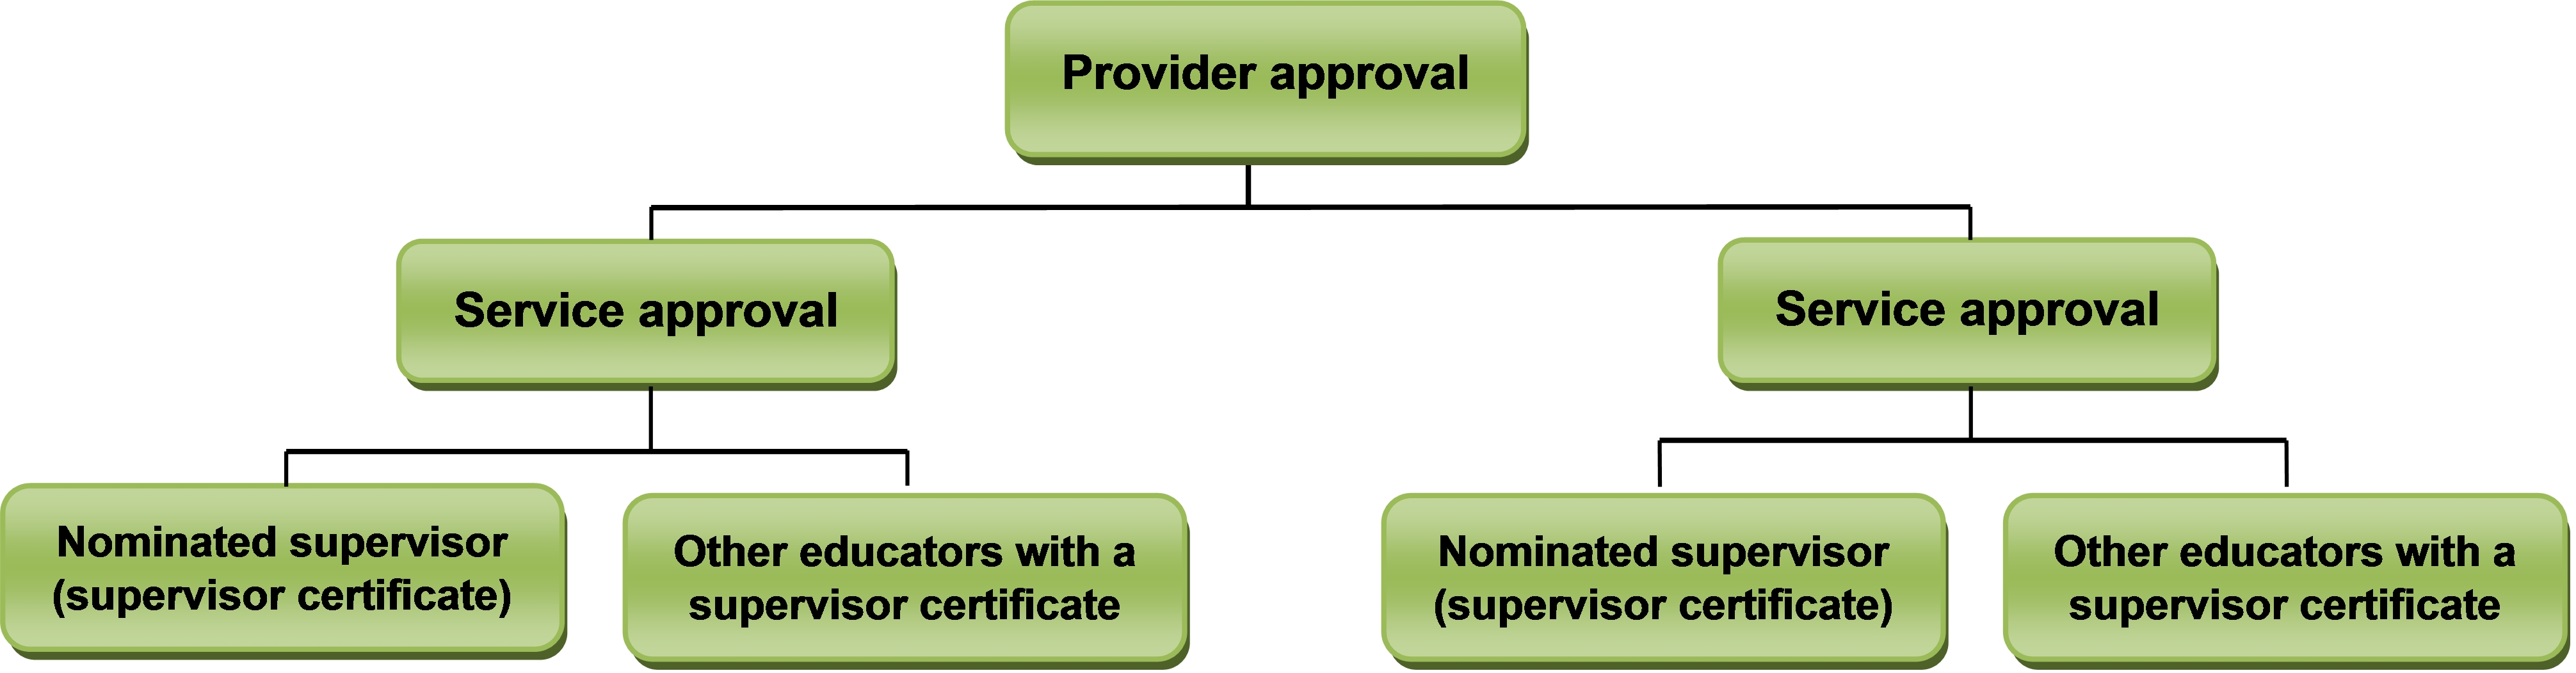 Flow chart for provider approval